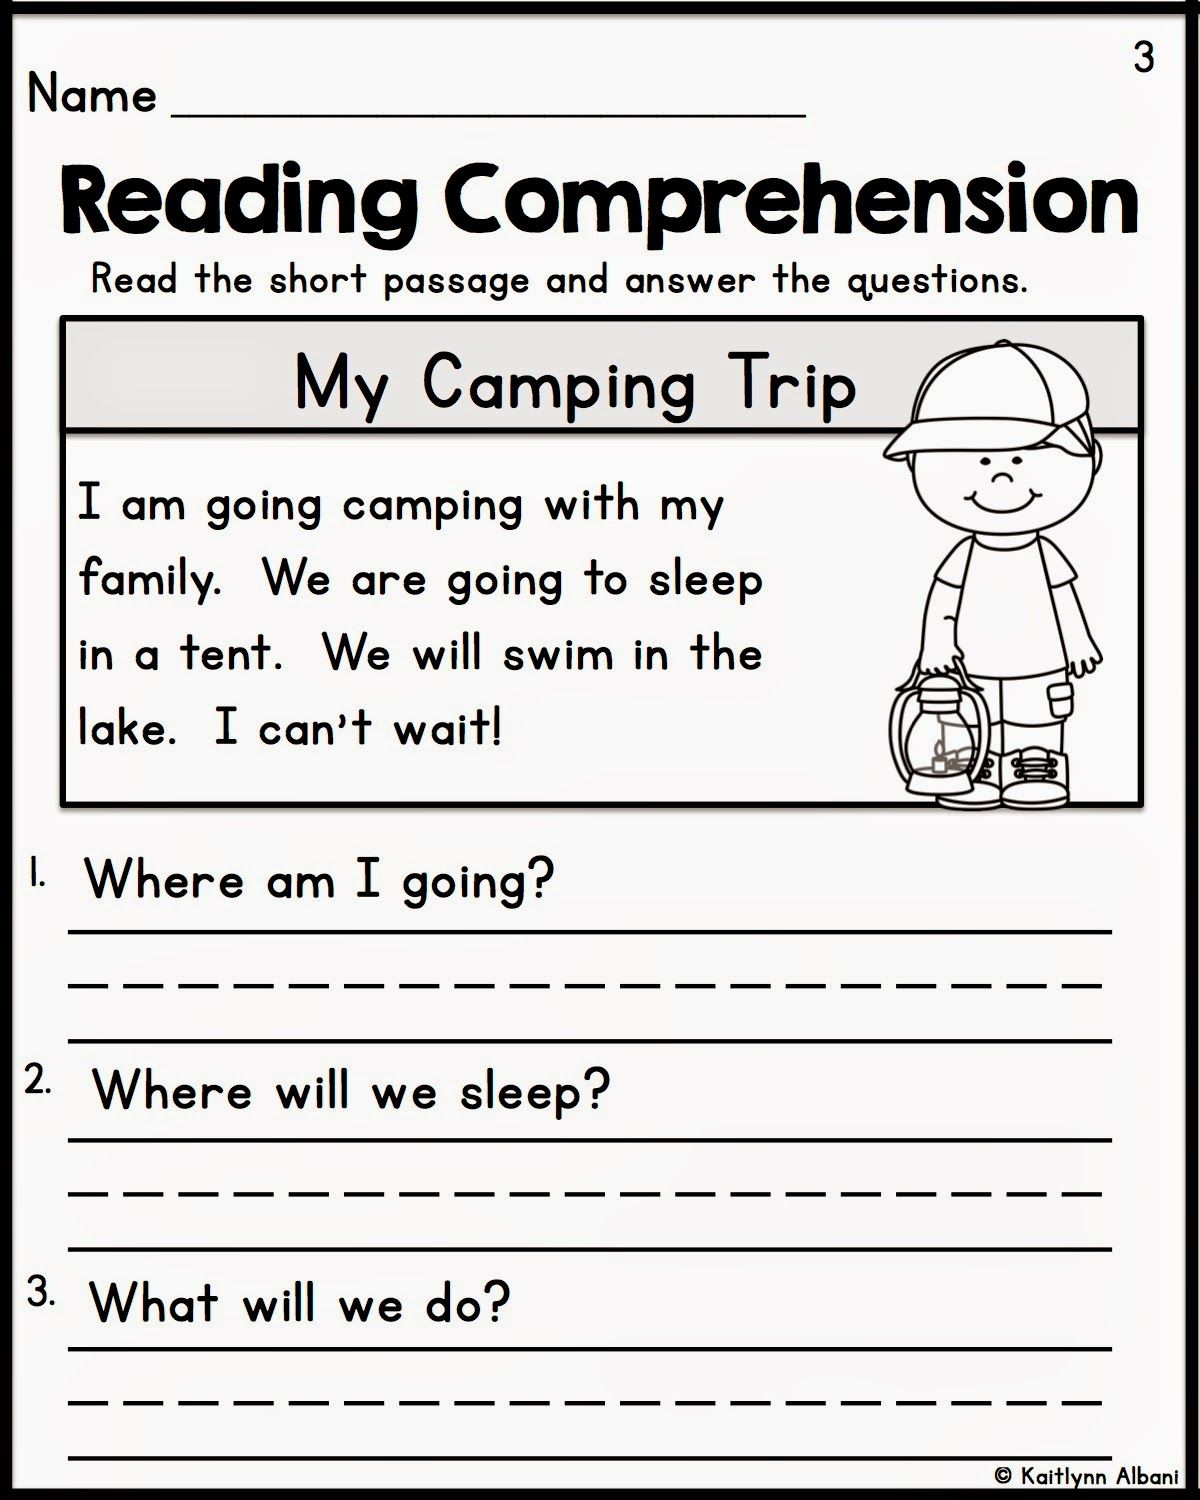 Worksheets Pre K Reading Worksheets the best of teacher entrepreneurs ii kindergarten reading comprehension passages